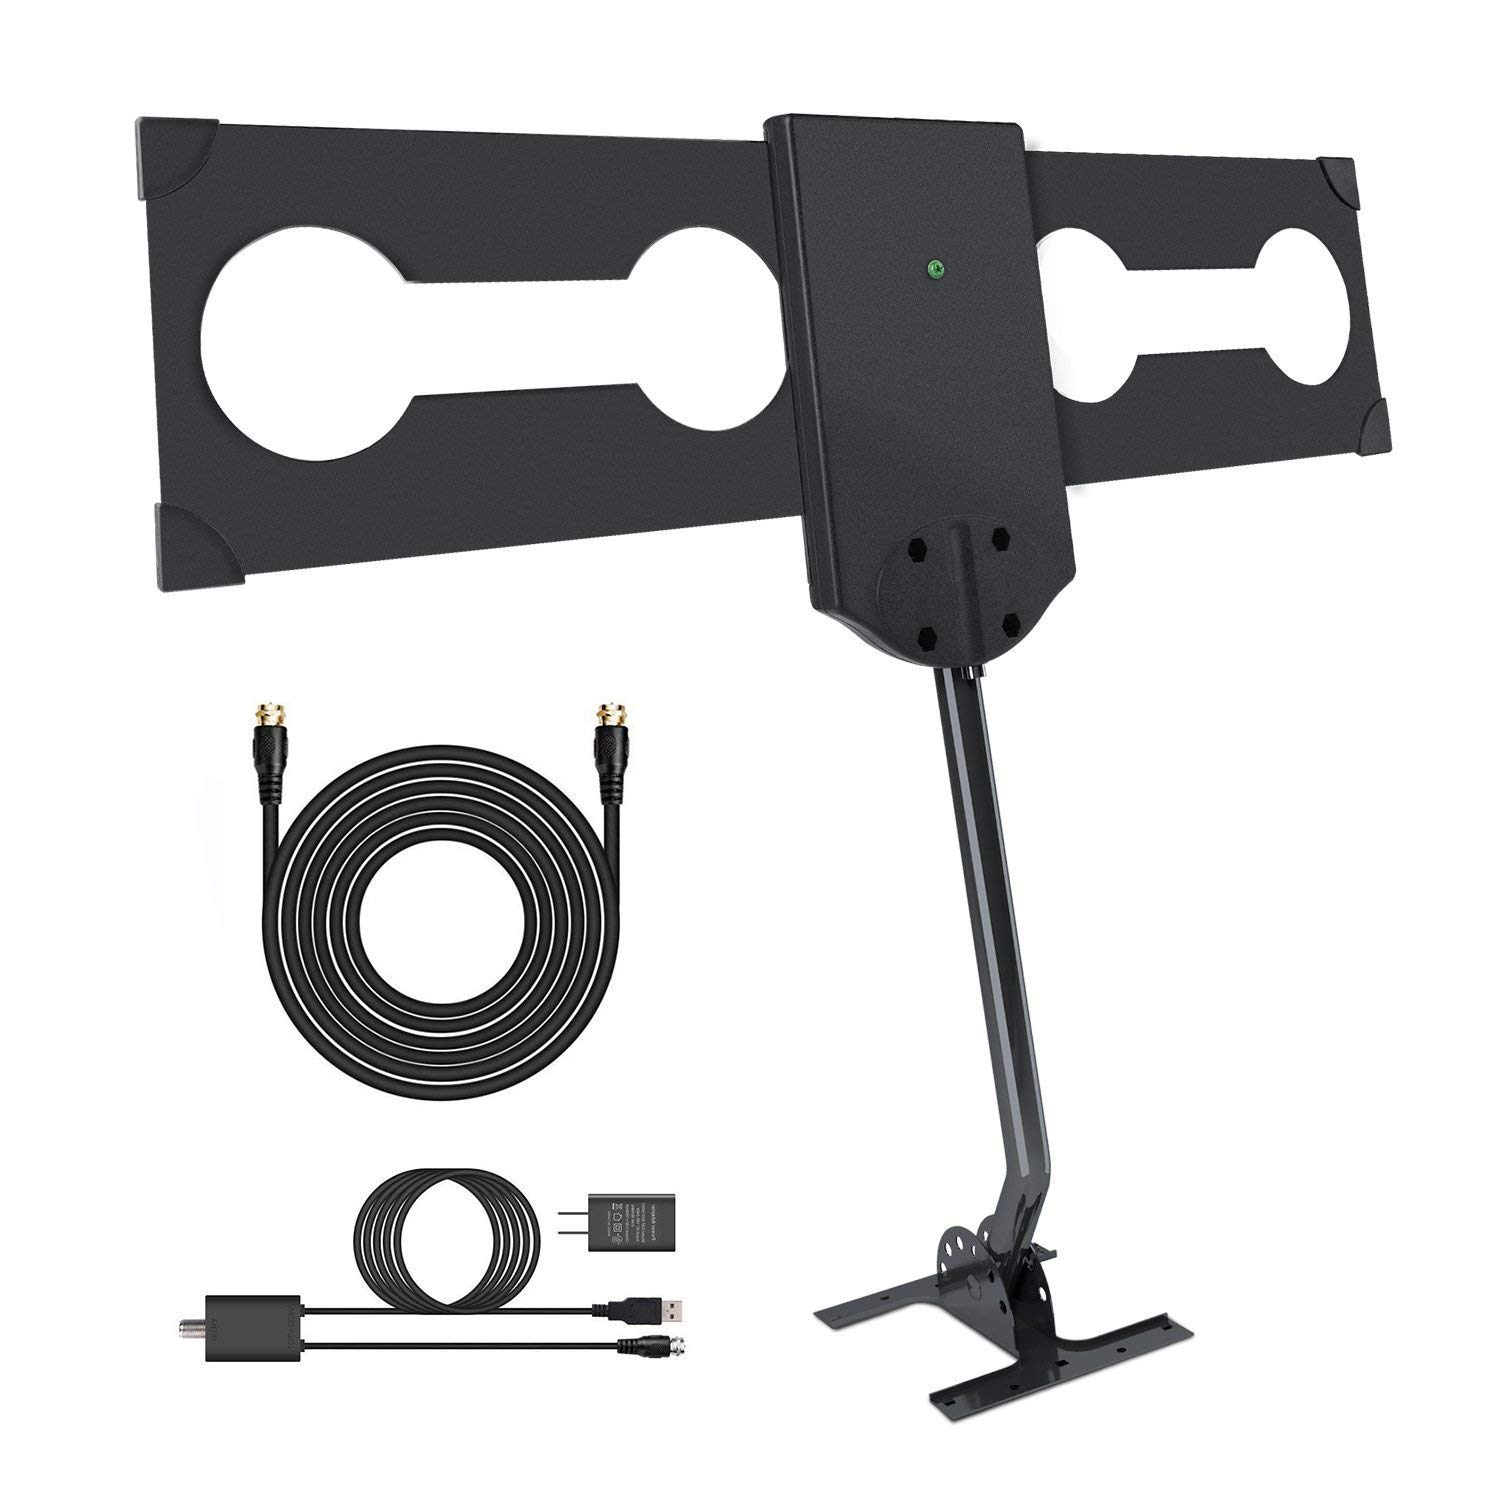 GJT 150 Miles Range Outdoor TV Antenna High Reception Digital HDTV Attic/Roof Antenna with Amplifier and Mount Kit for Free Channel,30ft High Performance Coax Cable with Adapter (GJT-ANT09) by GJT